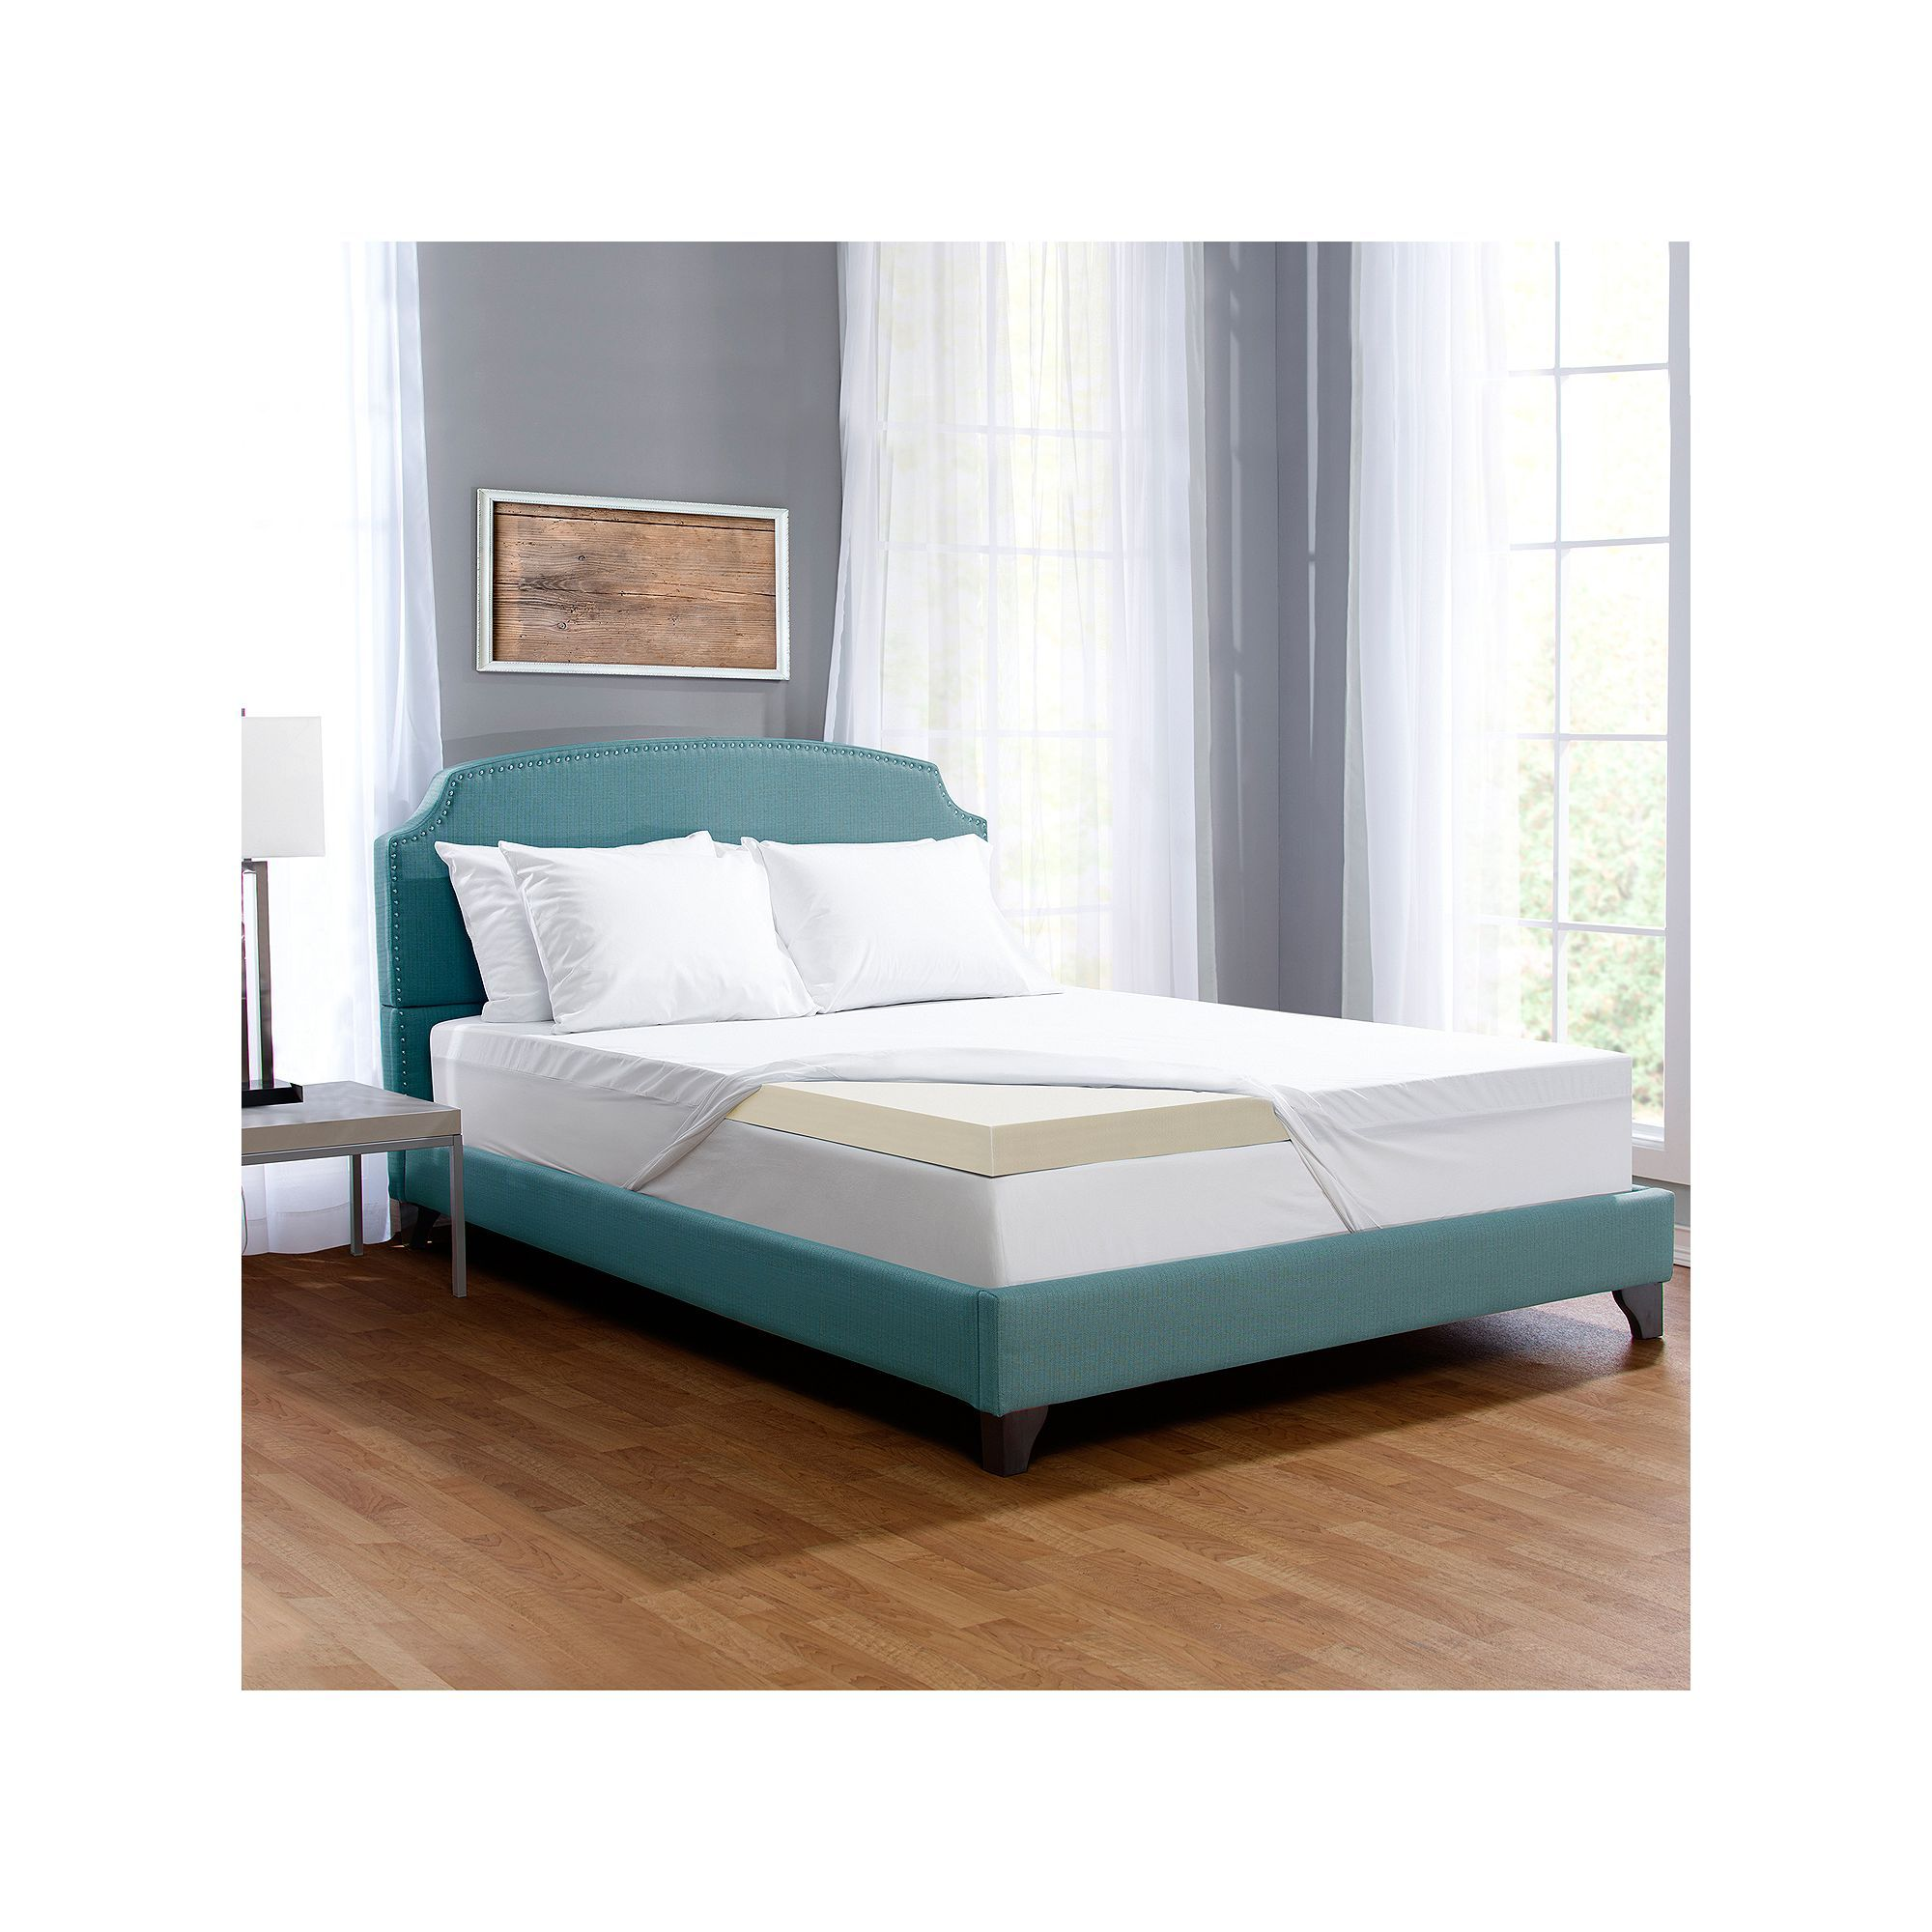 com rest gel mattress topper ac queen serta x memory foam dp inch amazon